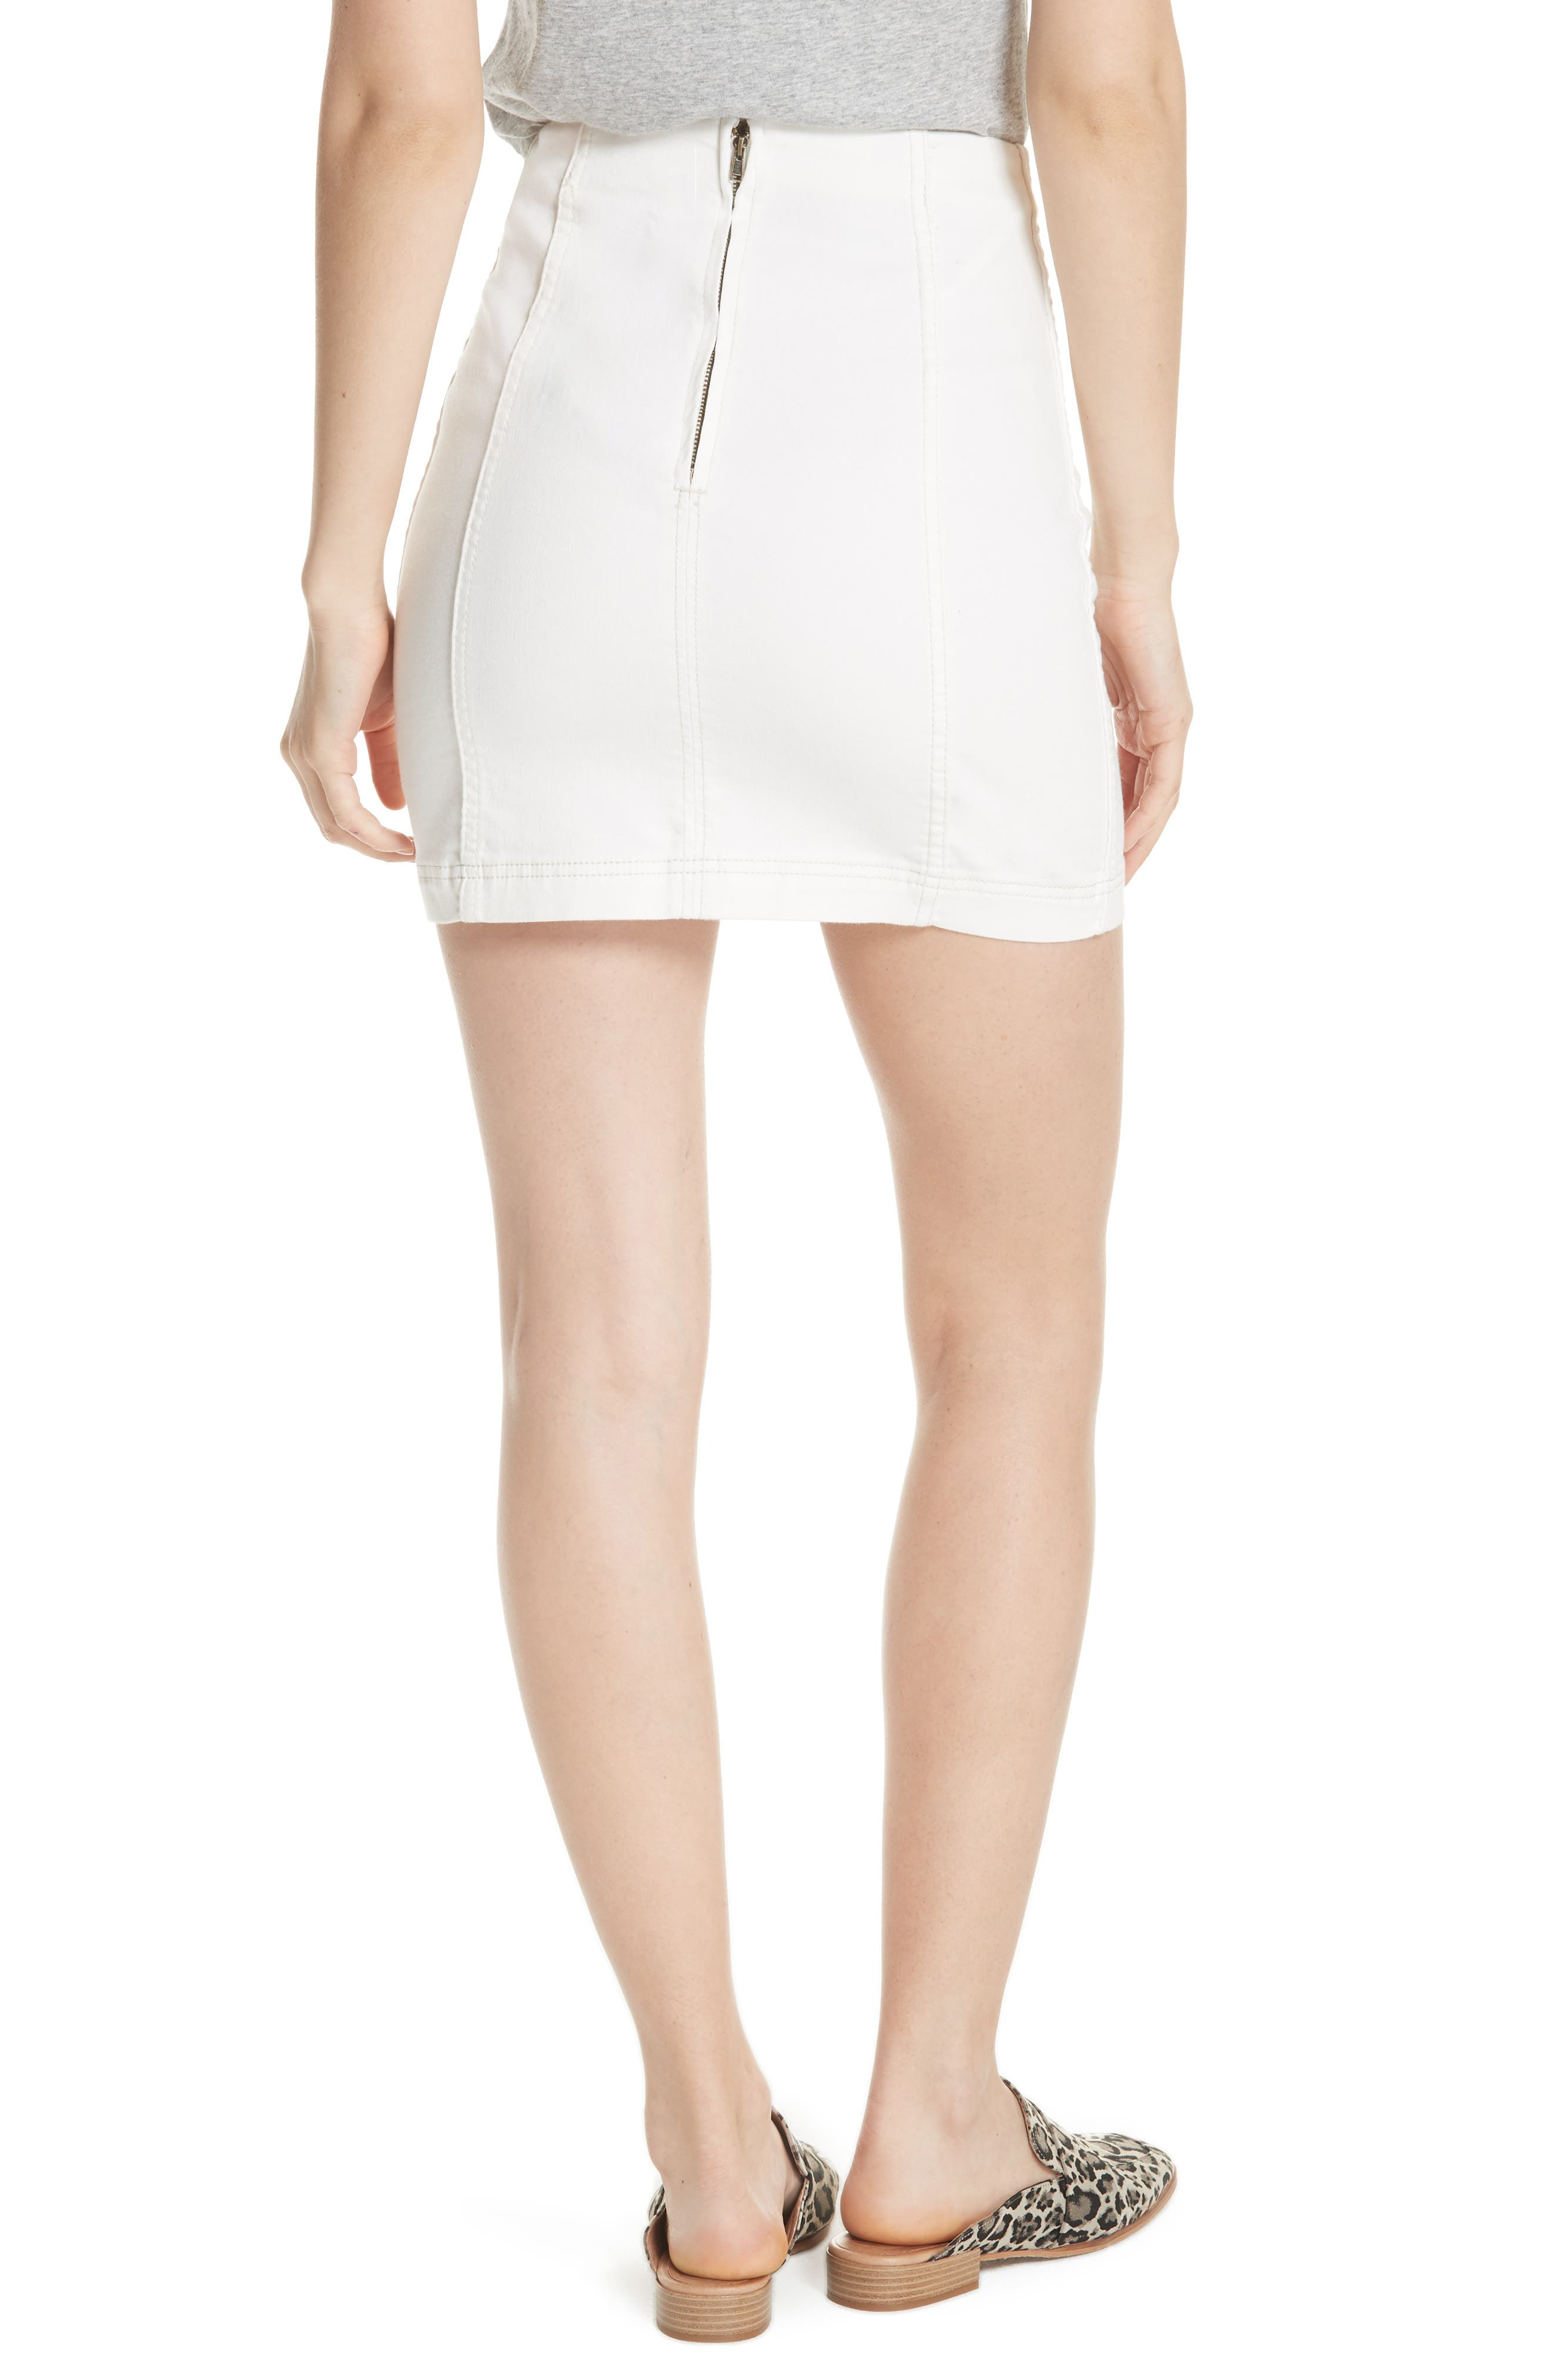 FREE PEOPLE, We the Free by Free People Modern Denim Skirt, Alternate thumbnail 2, color, 100